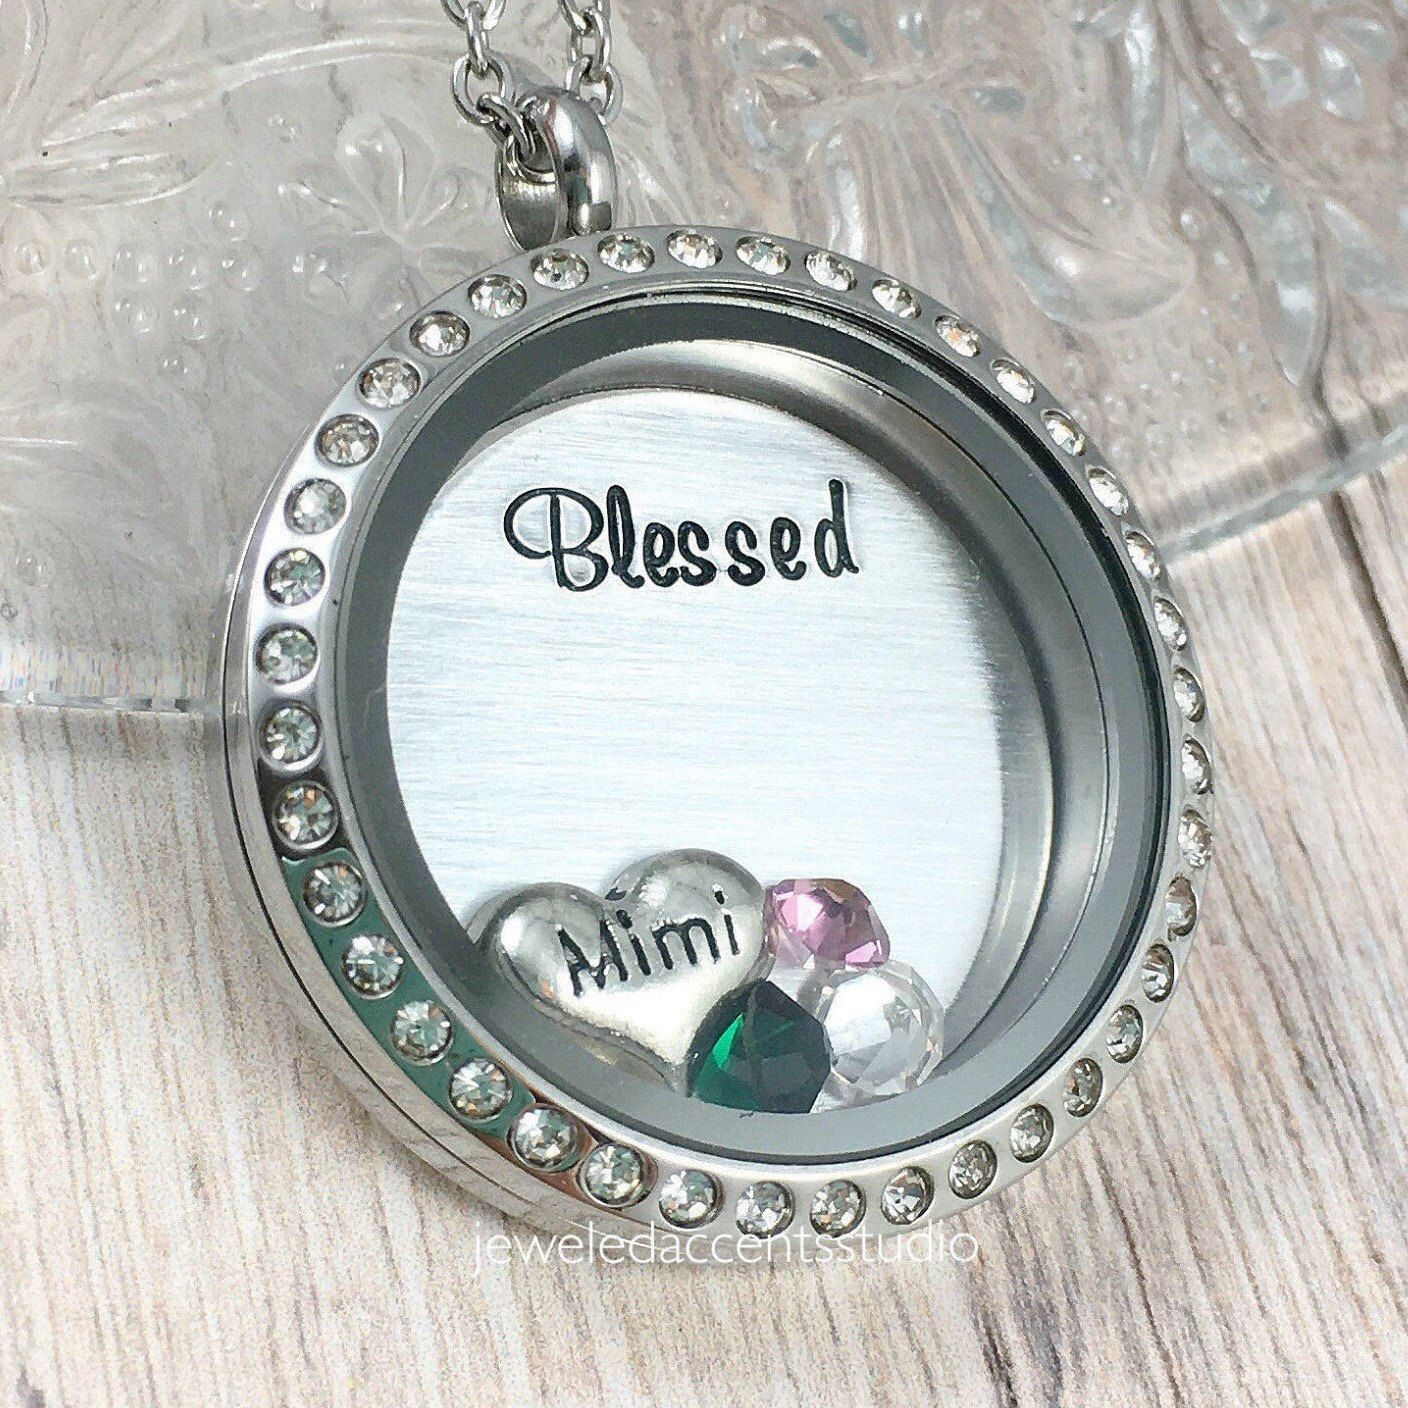 grandkid personalized ip family sterling walmart com pendant over heart gold jewelry available keepsake s birthstone mother in silver necklace